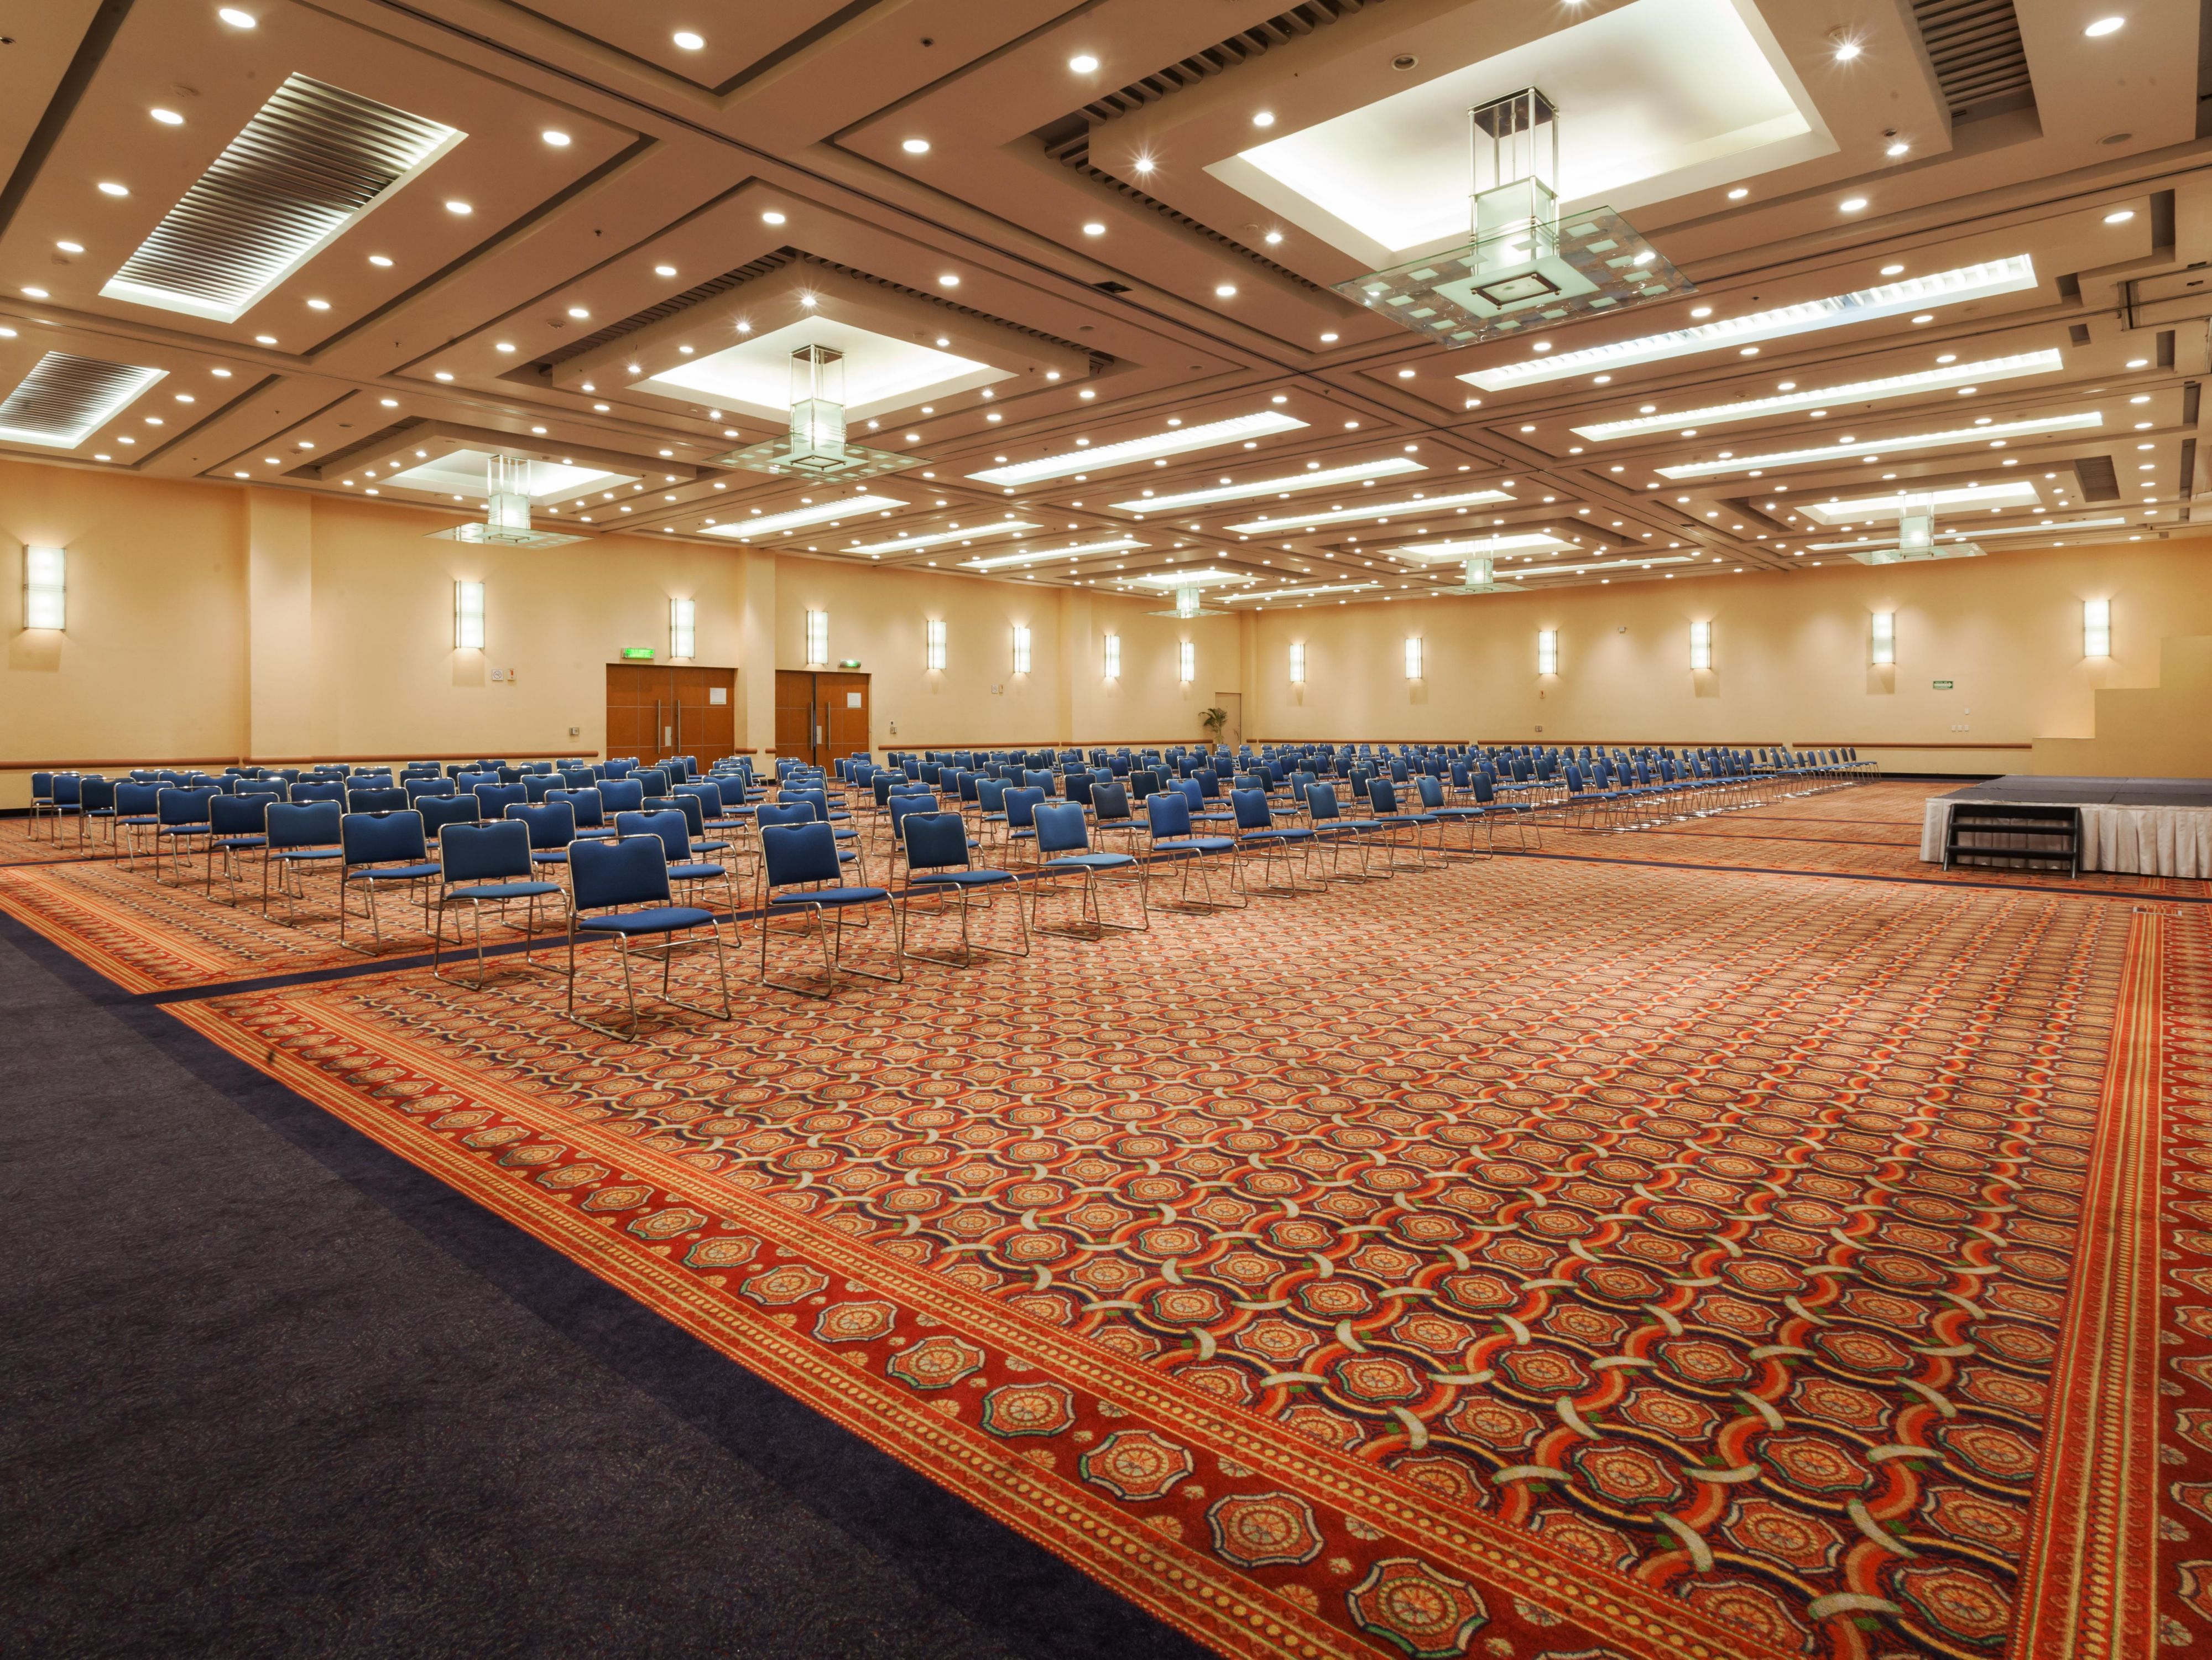 Our grand Ballroom is perfect for large events and banquets